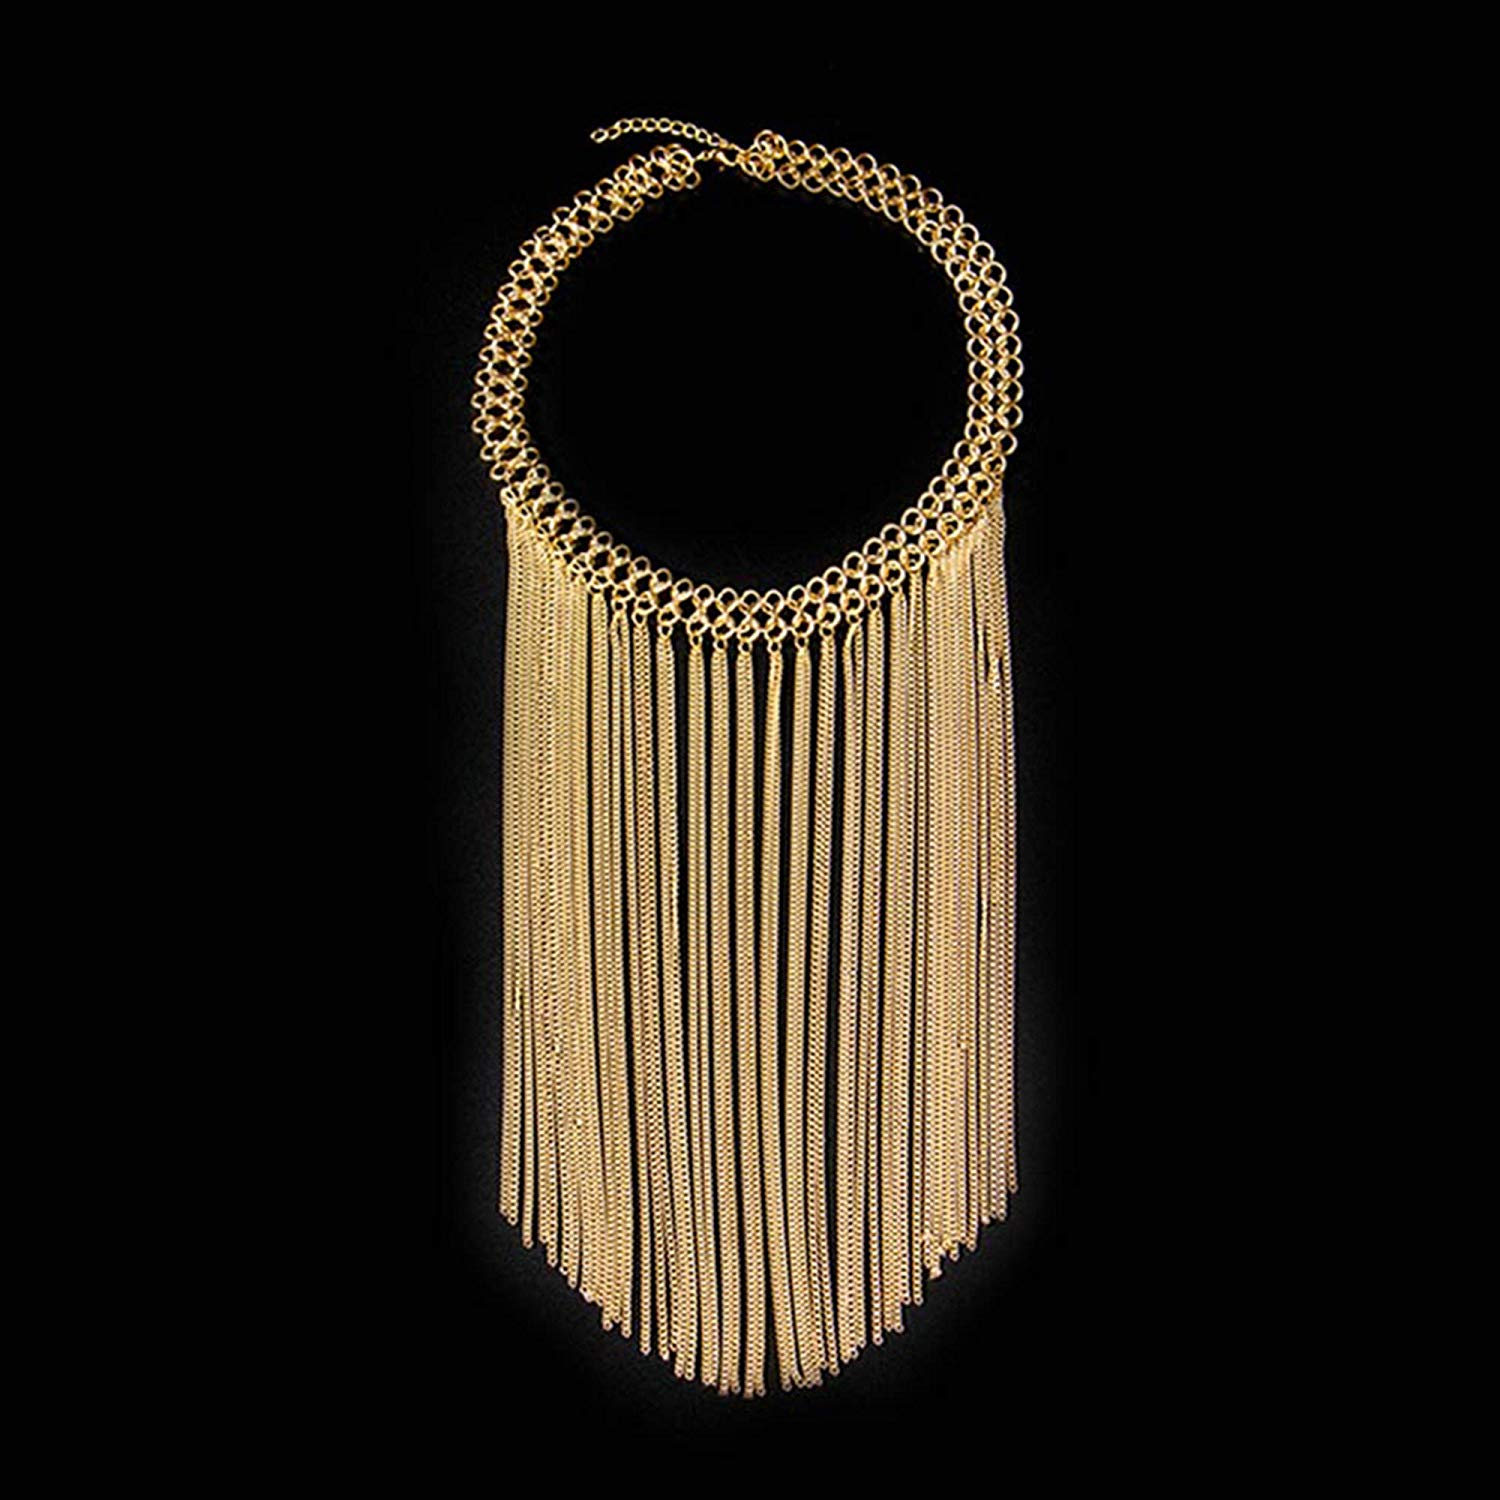 71Rj95VnmOL._UL1500_ Gold Multi Layered Drop Dangle Long Chain Tassel Statement Necklace for Women